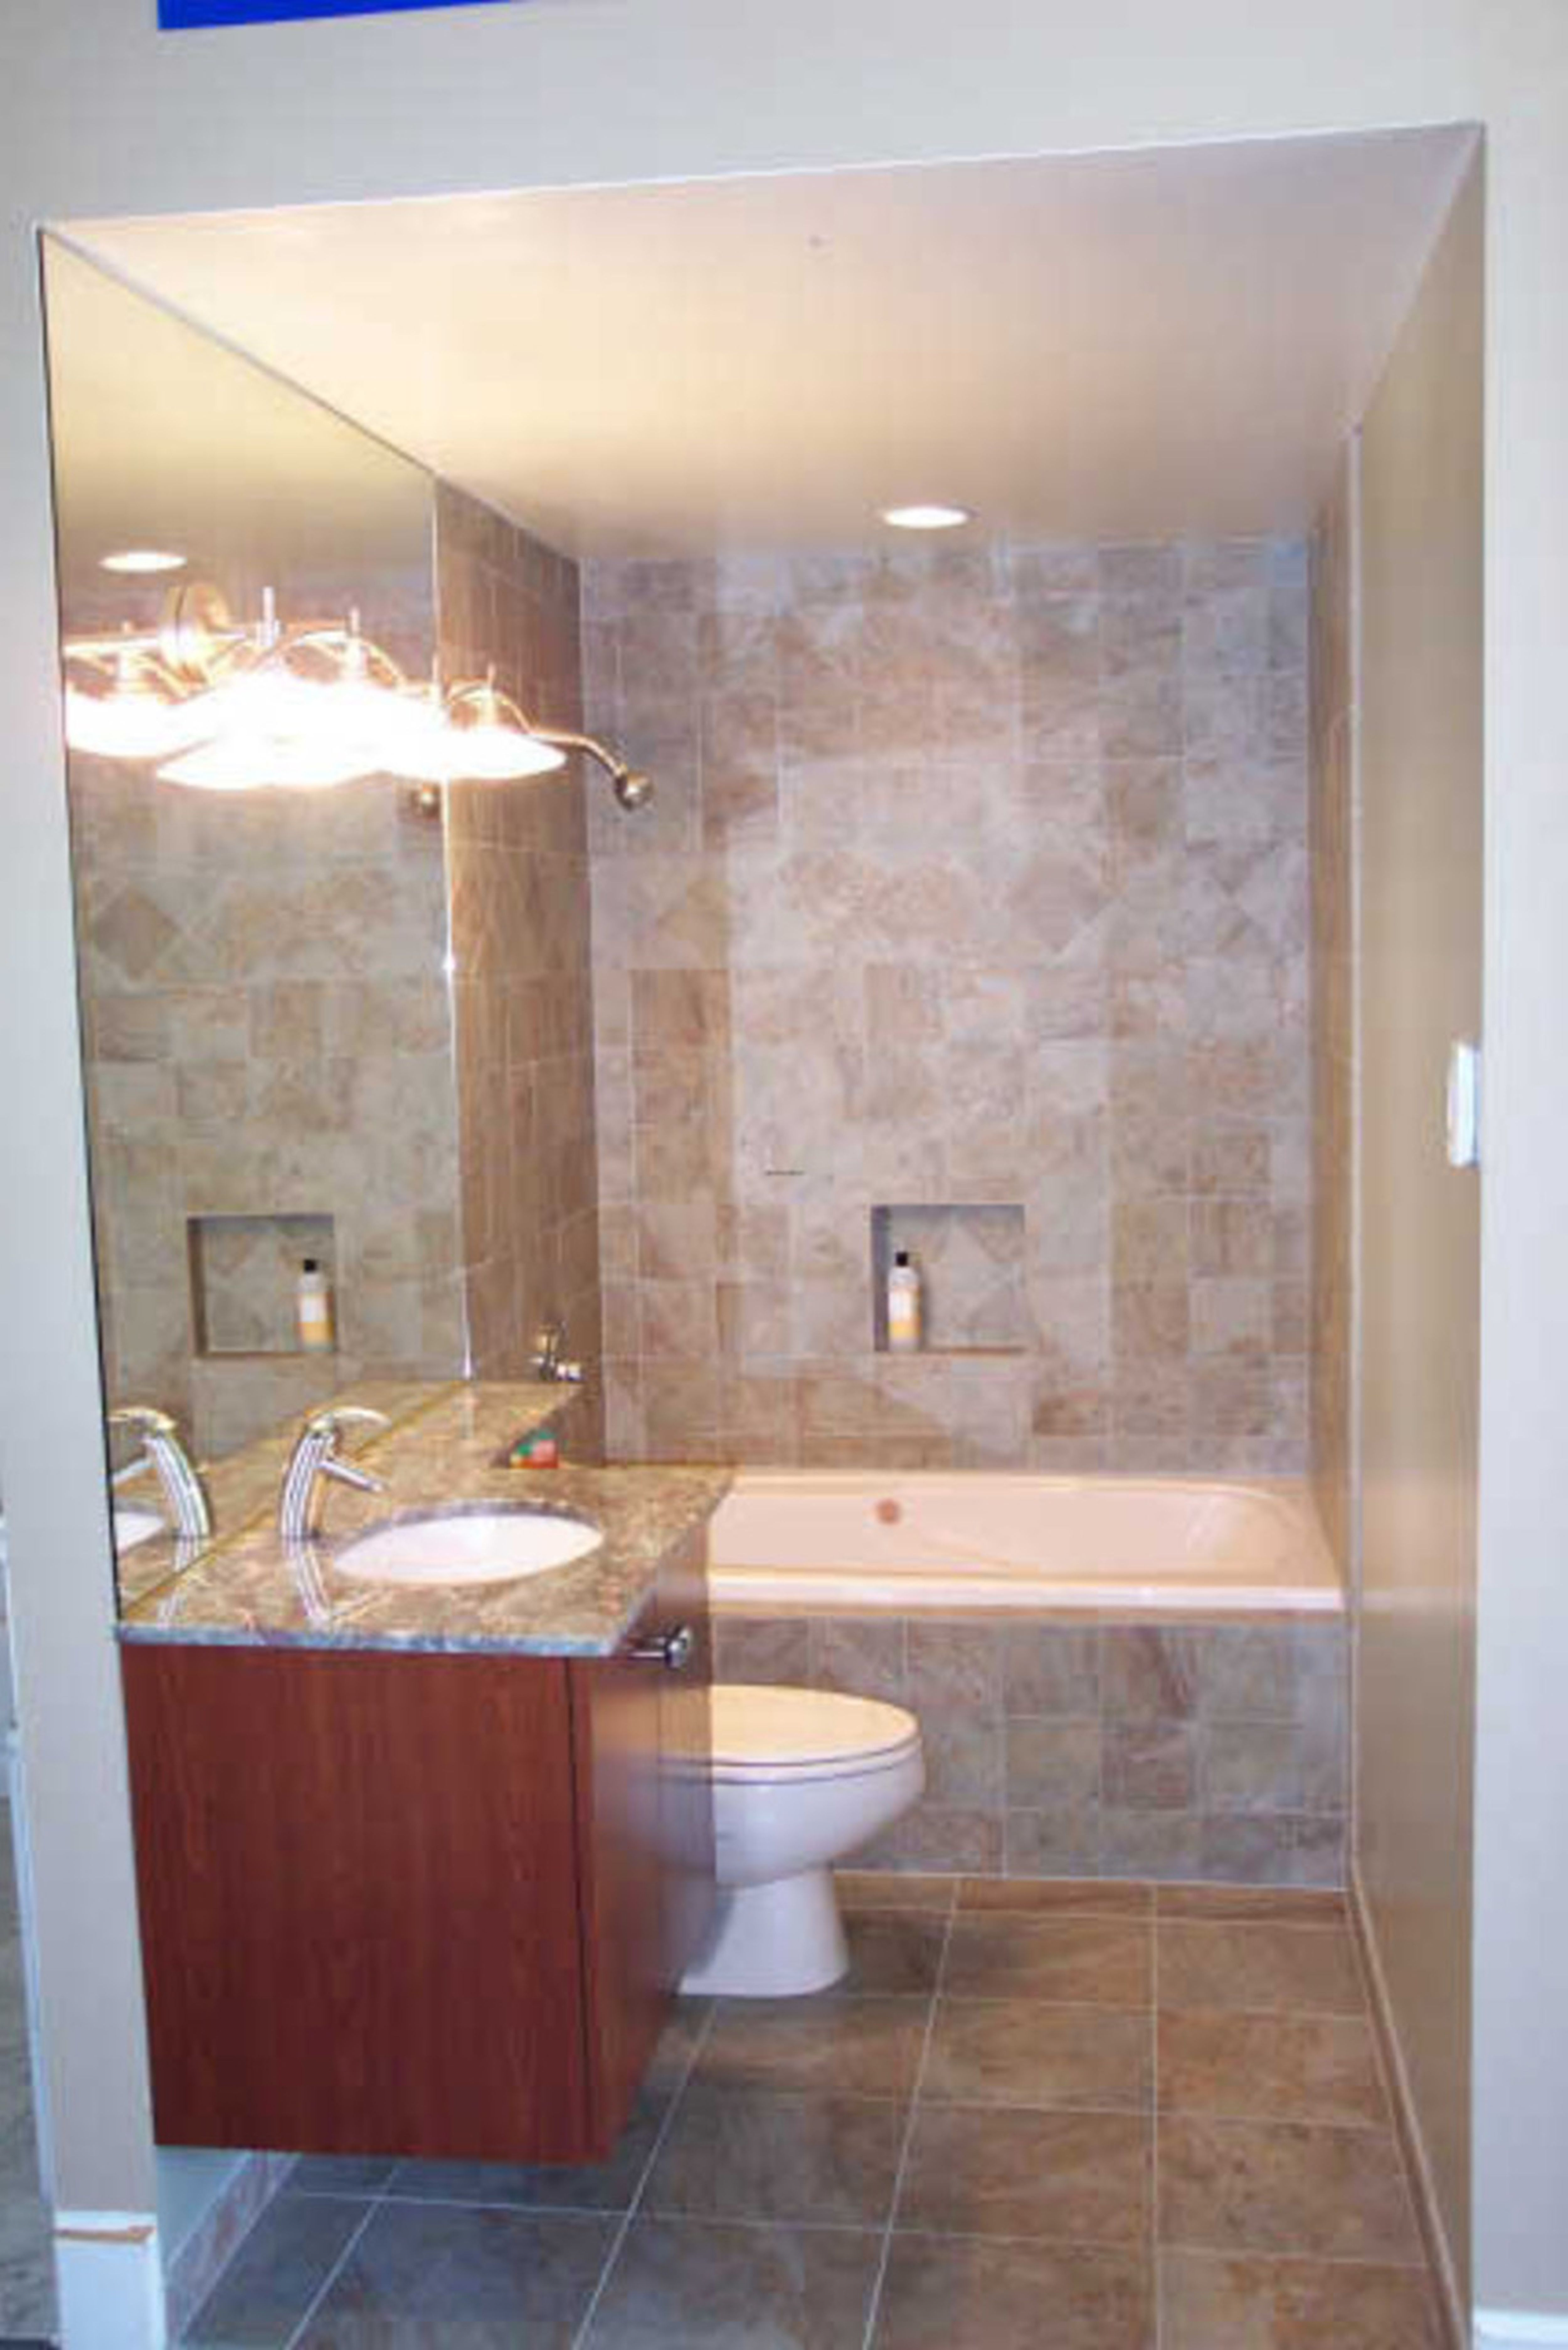 Excellent Bathroom Designs for Small Spaces Concept - Home ... on Bathroom Designs For Small Spaces  id=53475